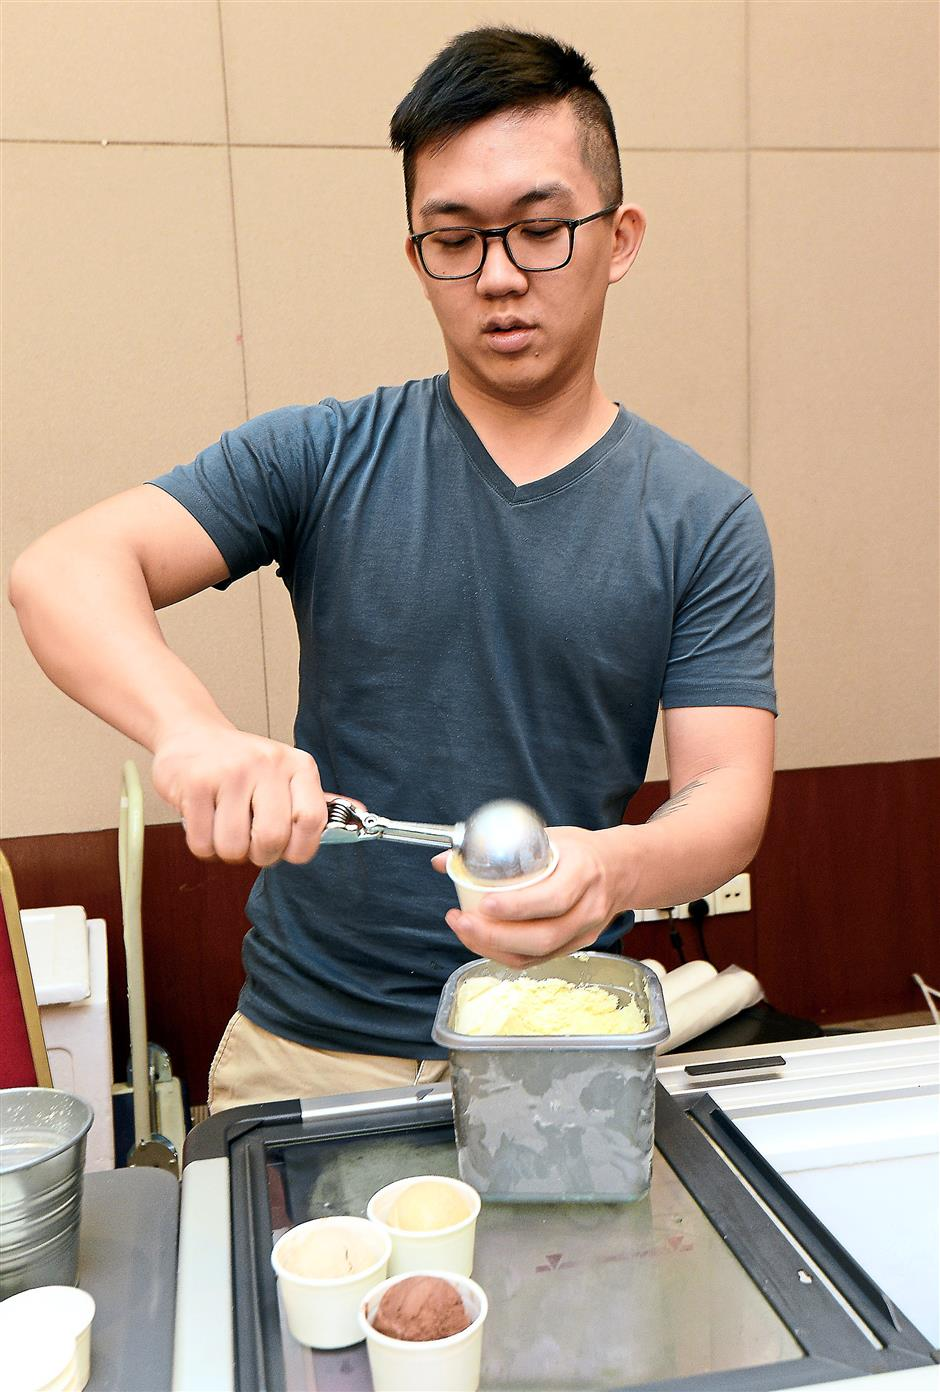 Creamy treat: A man serving ice cream at the Forty Licks booth.